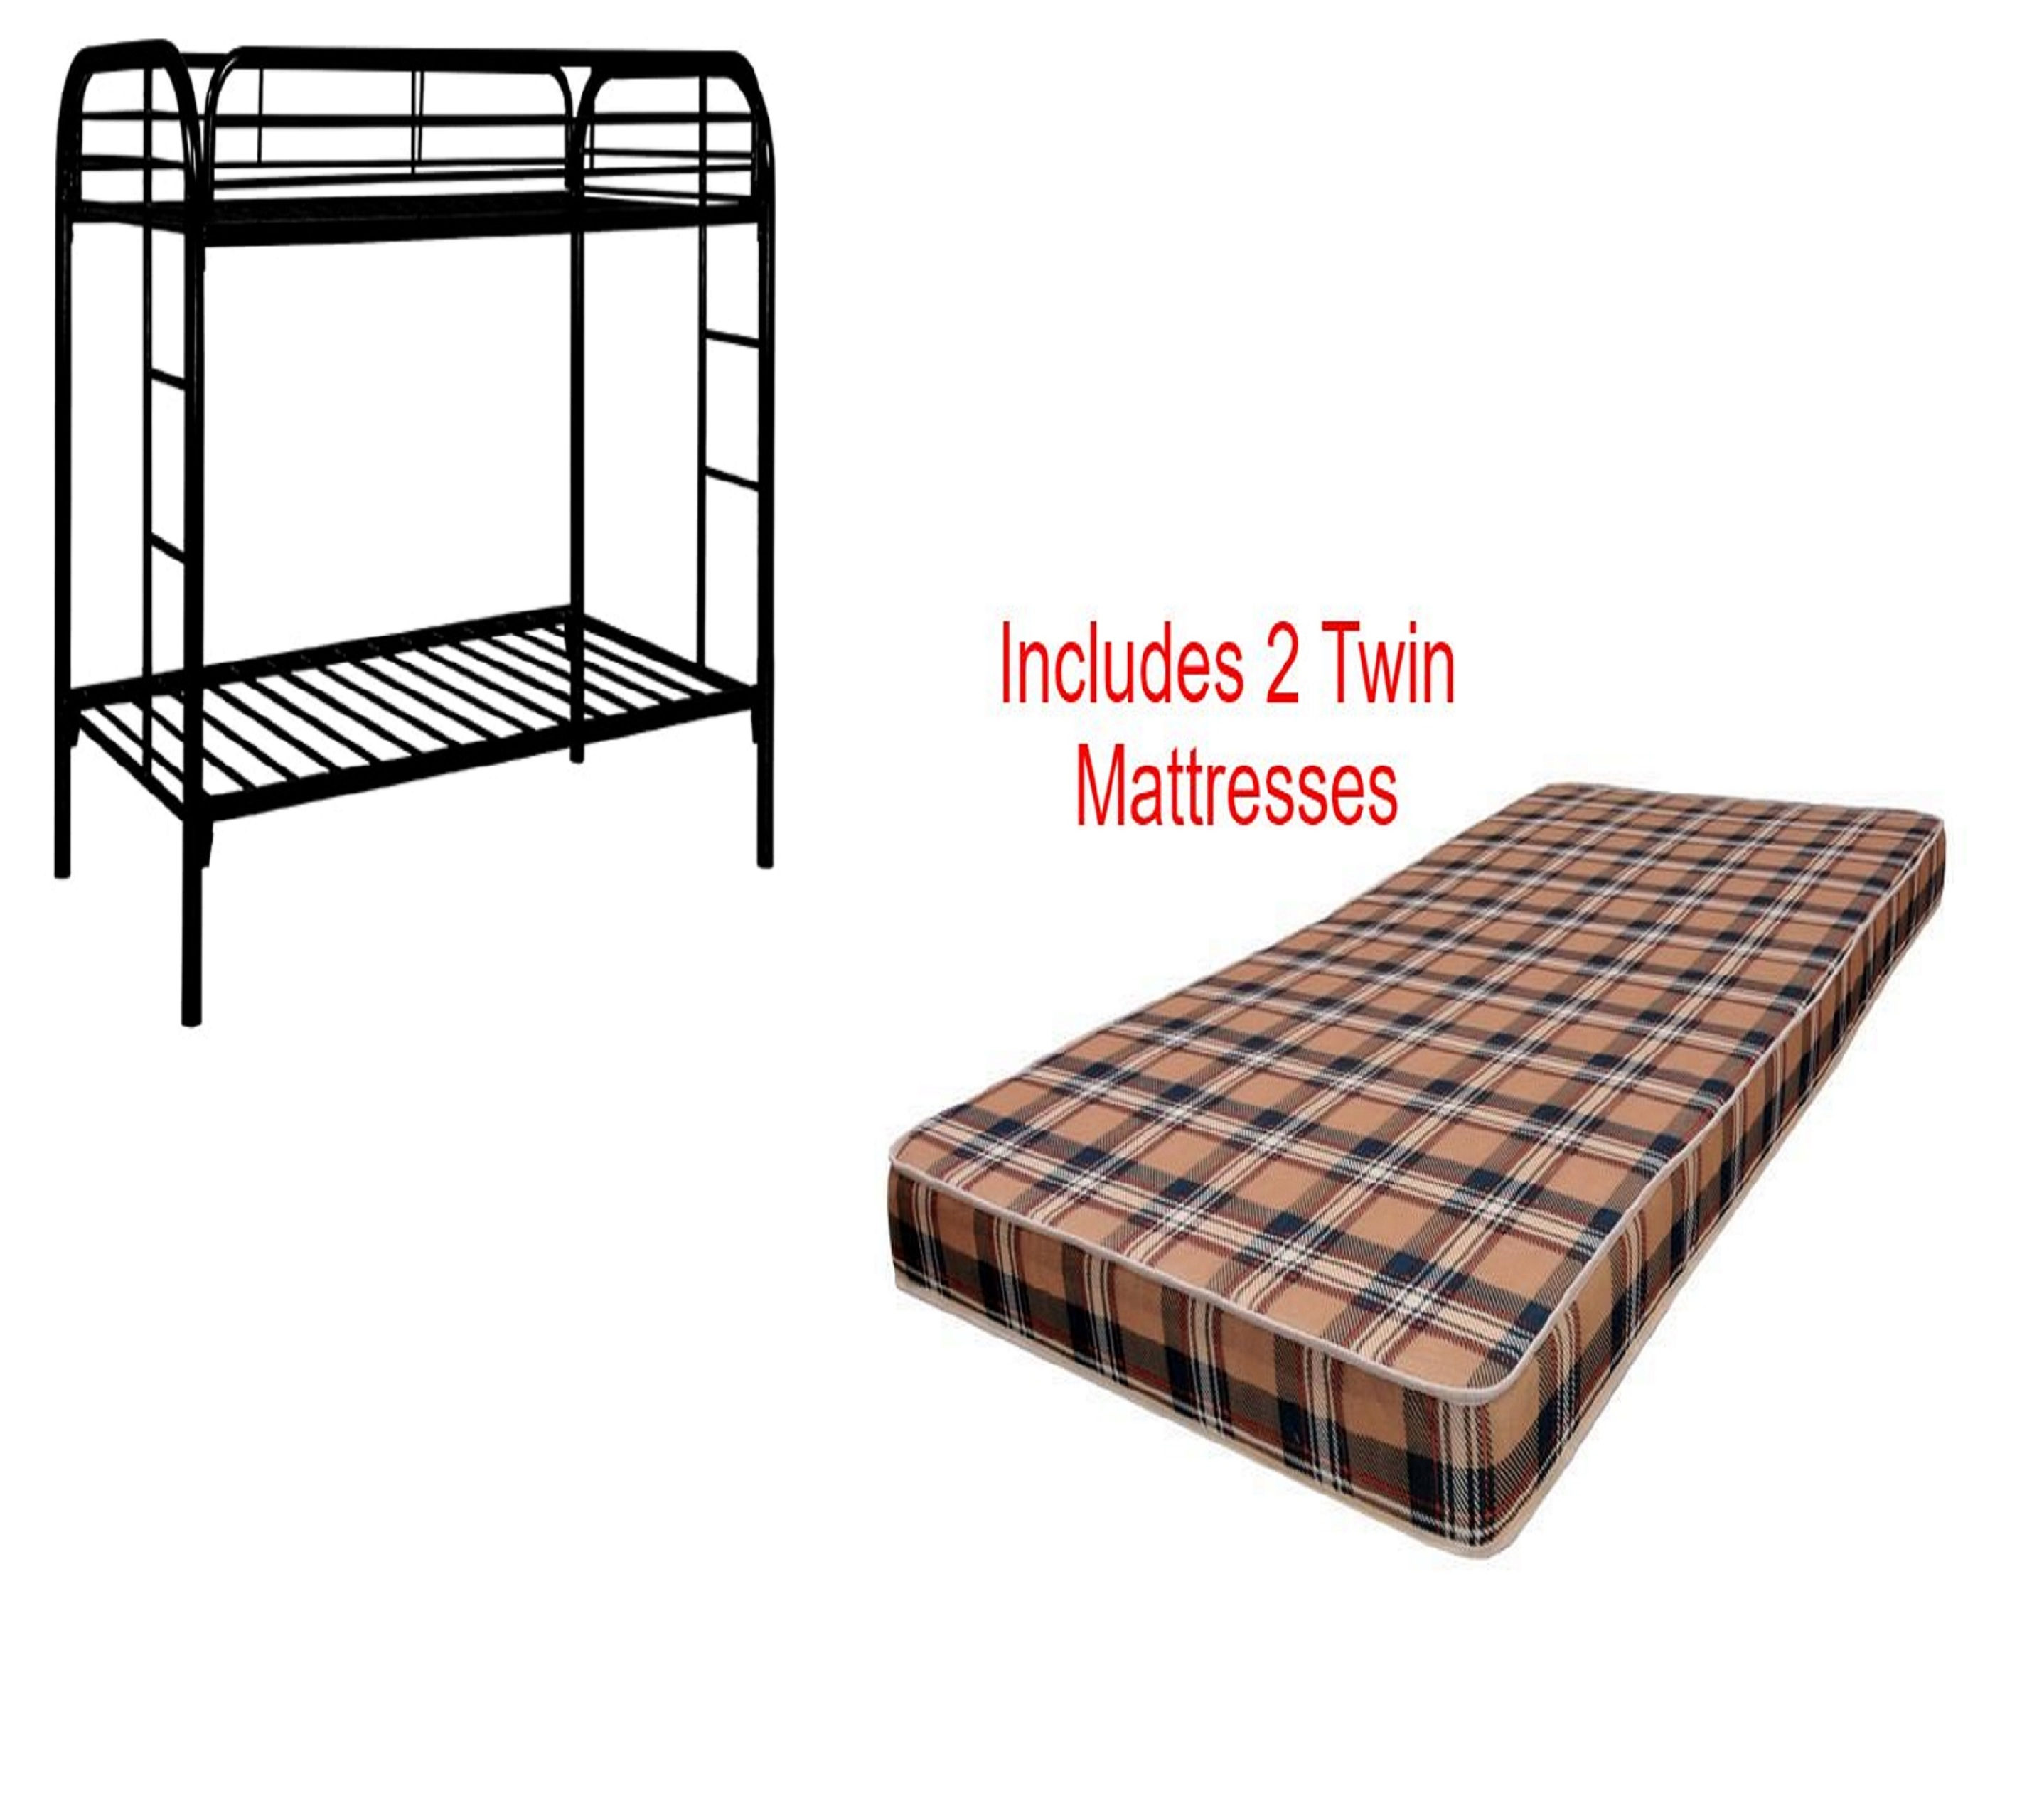 Discount Furniture Store Package 76: Complete Bunk Bed With Mattresses Package Deal